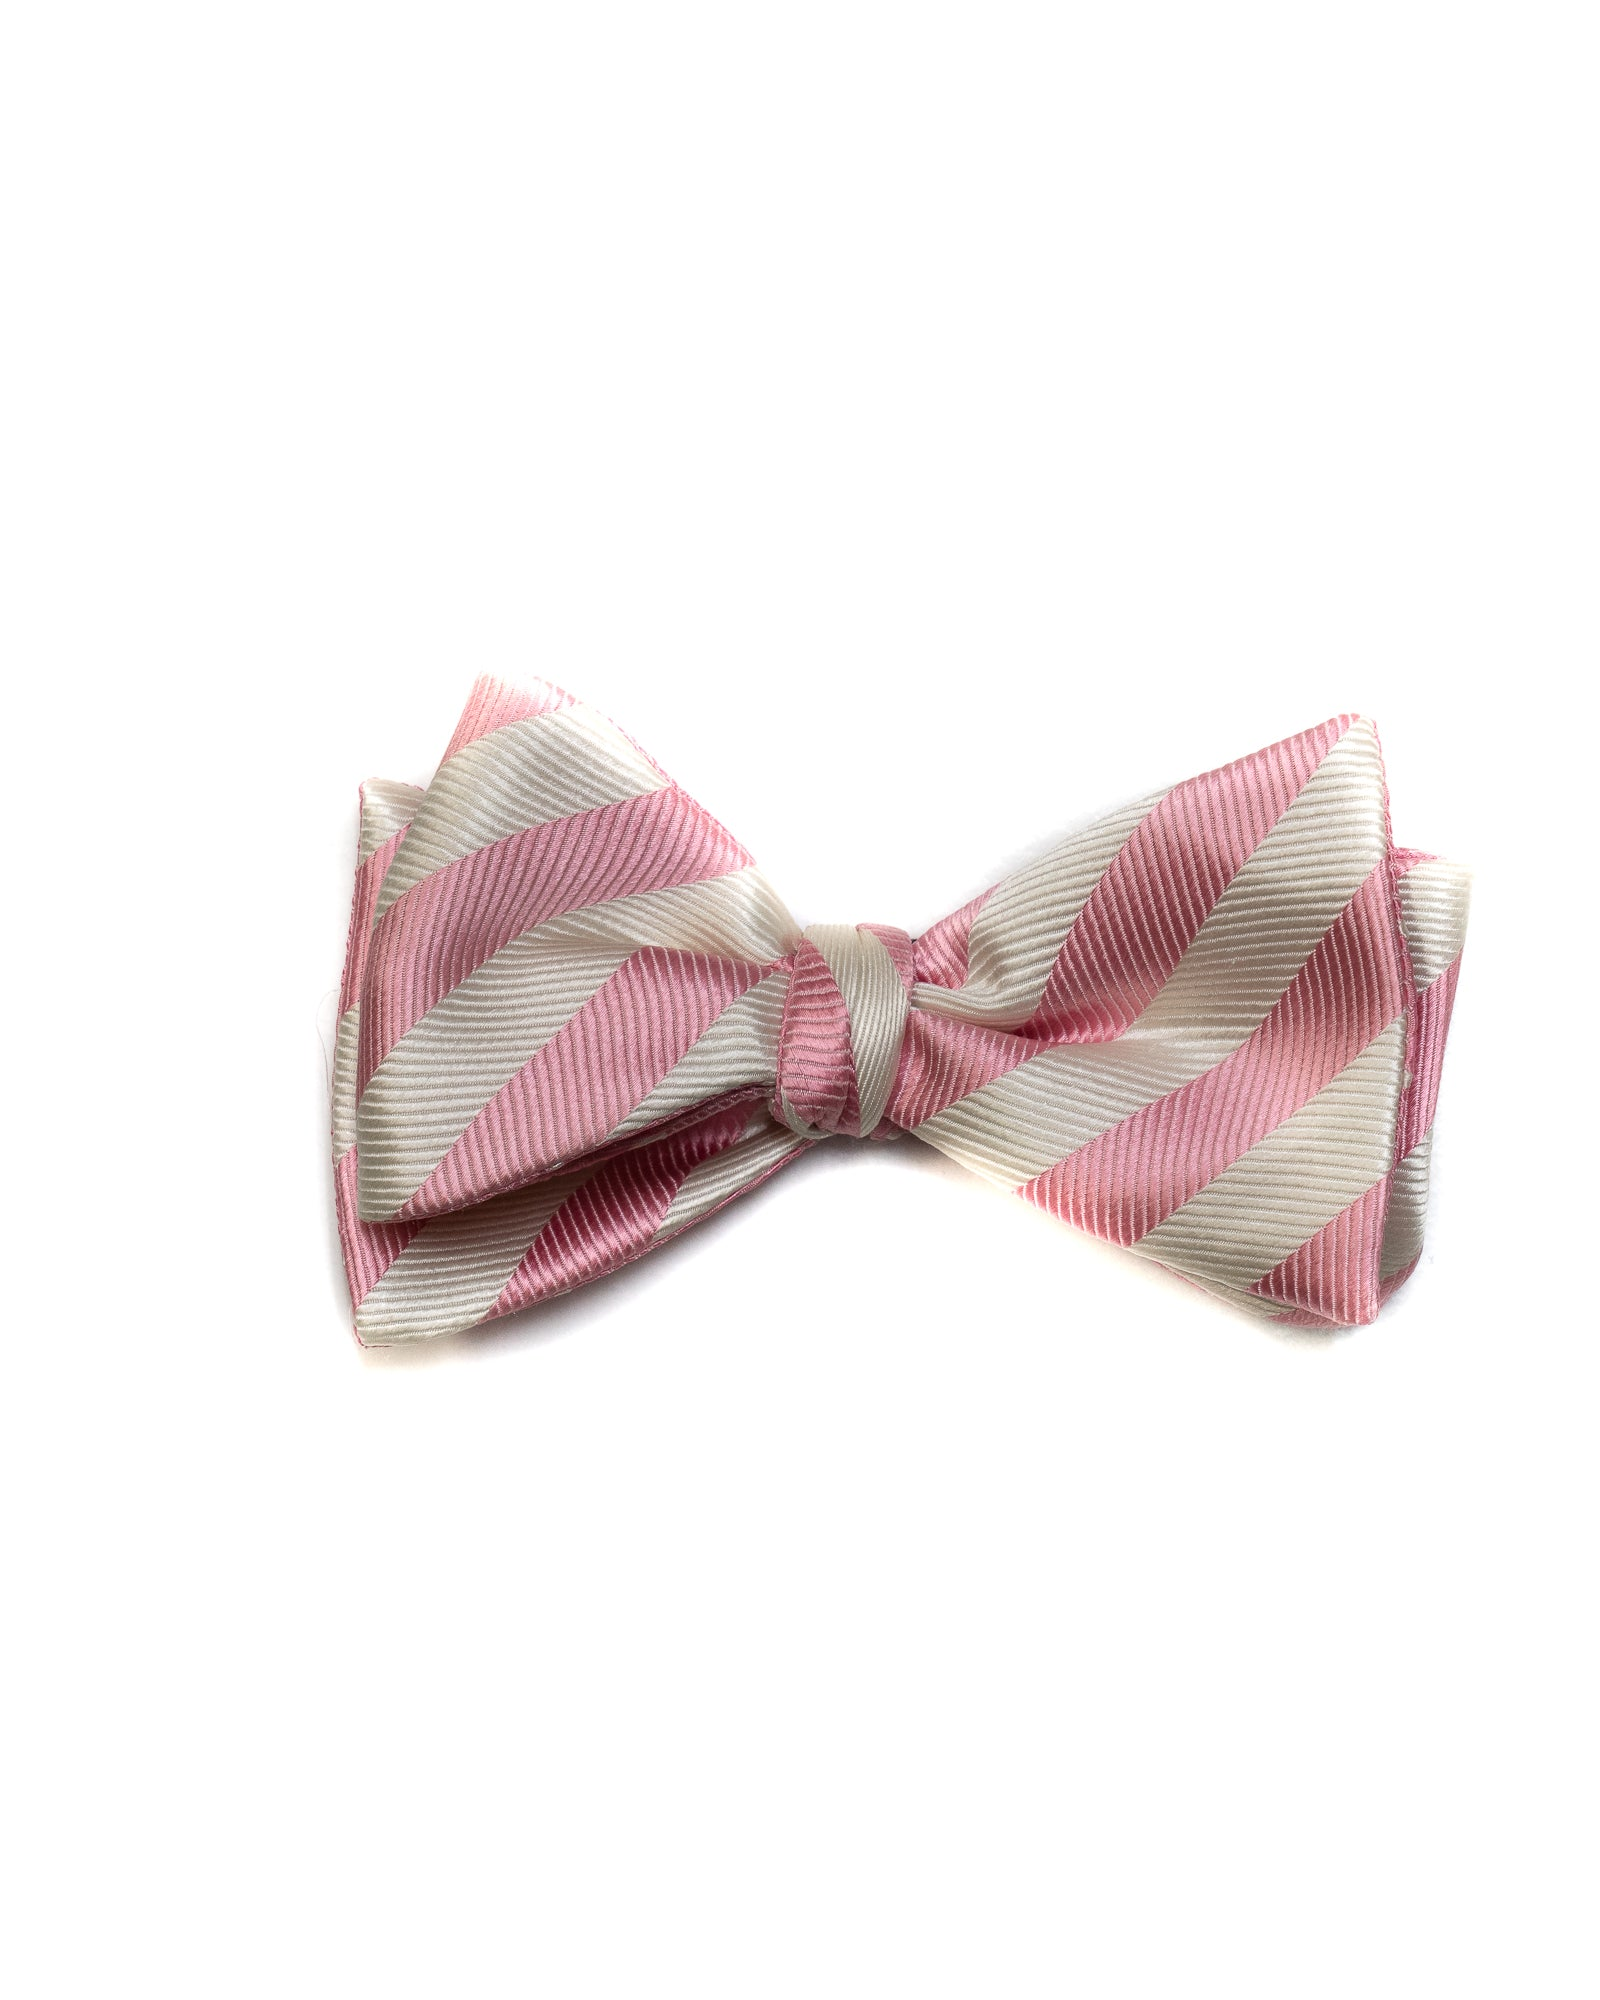 Self Tie All Silk Bow Tie In Pink Dot & Bar Stripe - Rainwater's Men's Clothing and Tuxedo Rental